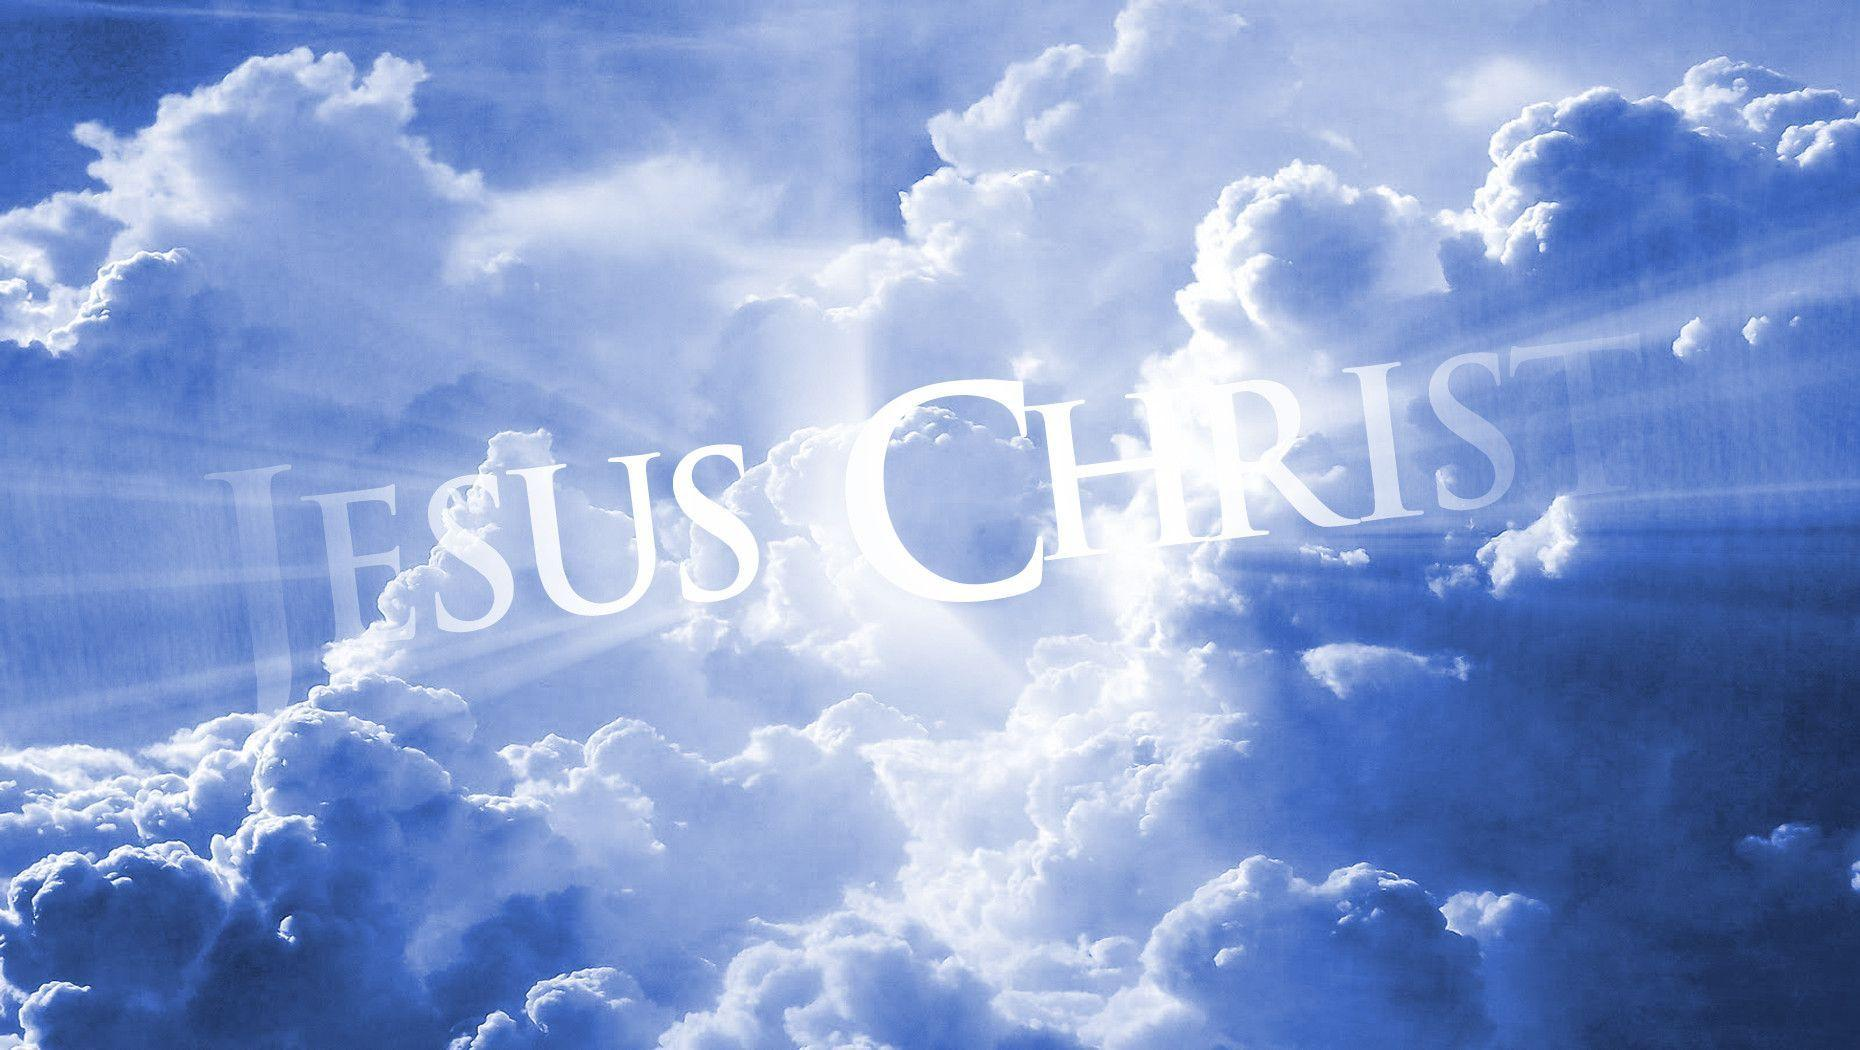 Jesus Christ in Heaven Wallpapers